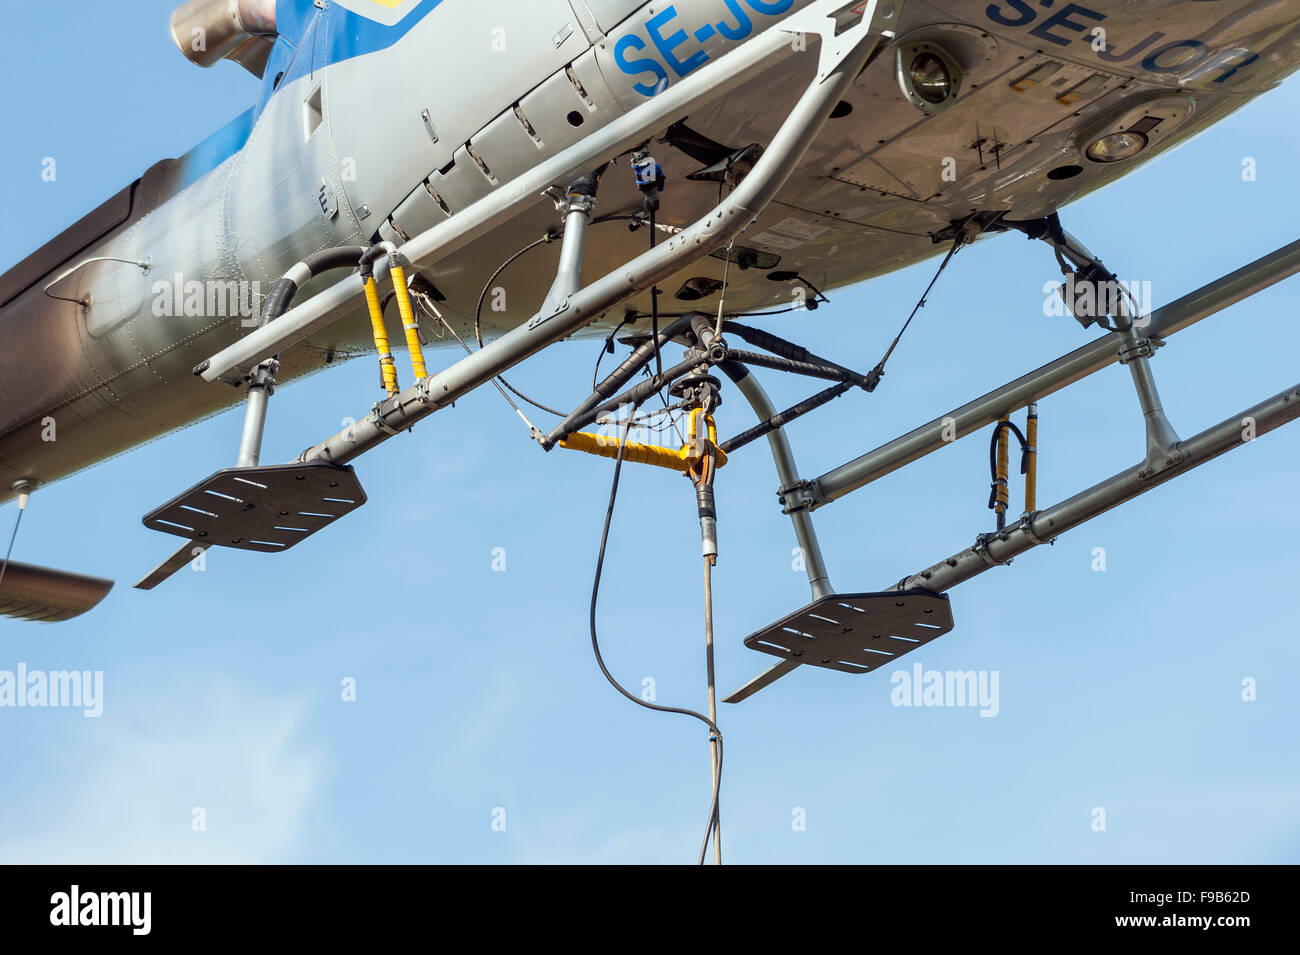 Load connection on helicopter - Stock Image